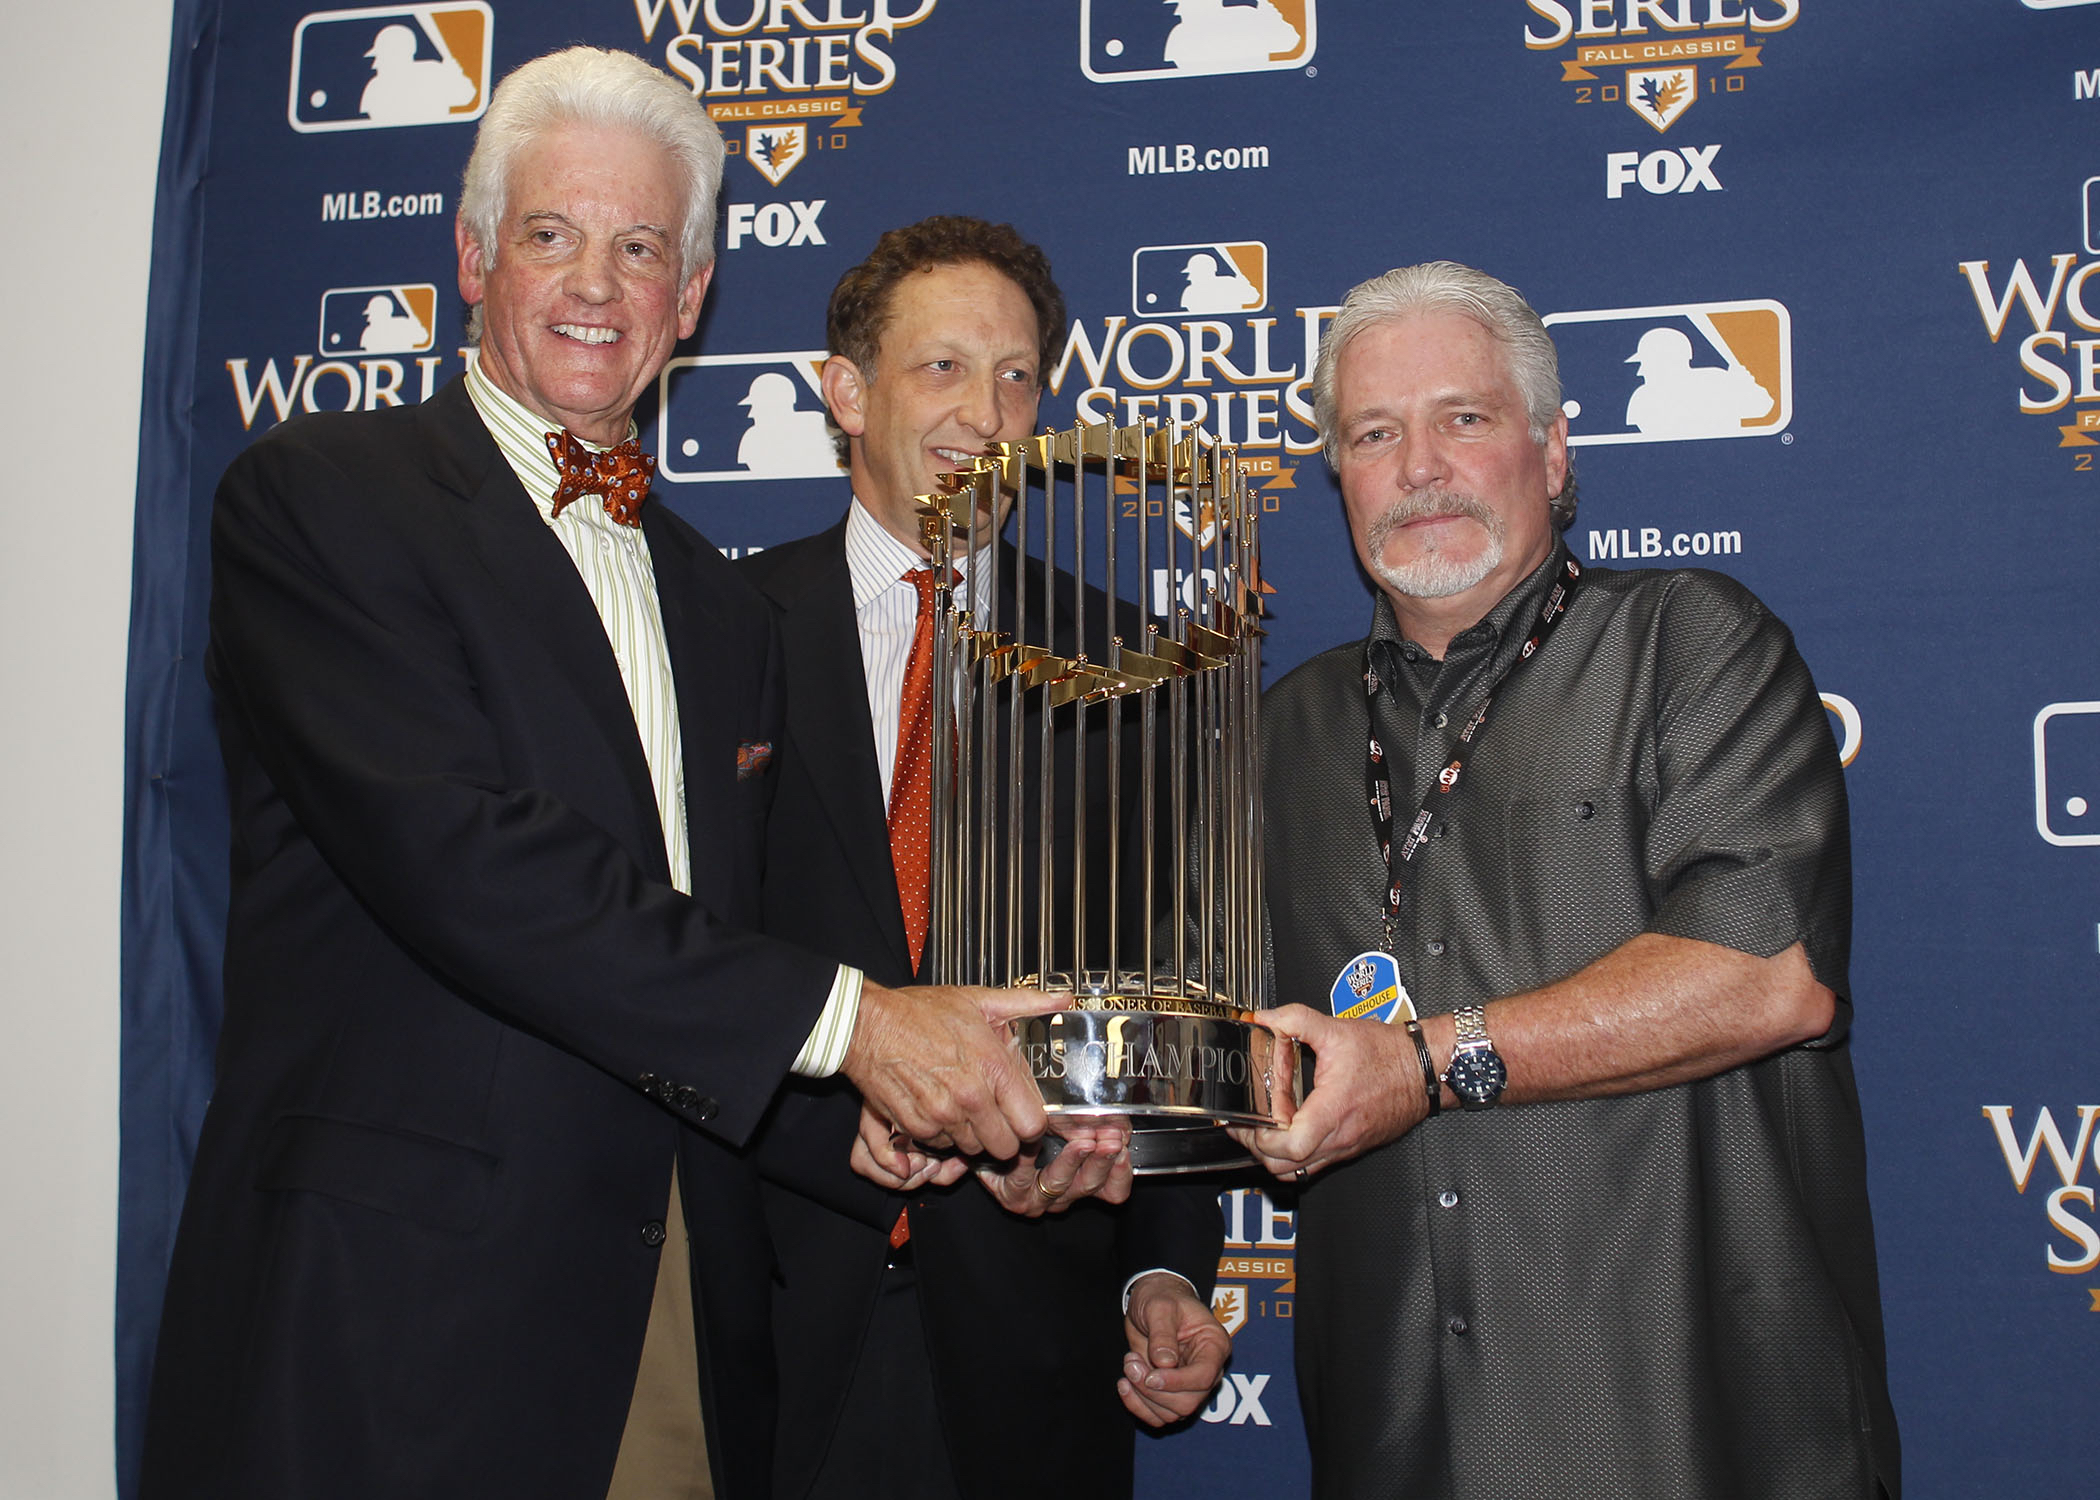 San Francisco Giants GM Brian Sabean, right, is presented with the 2010 World Series trophy by Giants owners Bill Neukom, left, and Larry Baer, center, on November 1, 2010. (SAN FRANCISCO GIANTS)